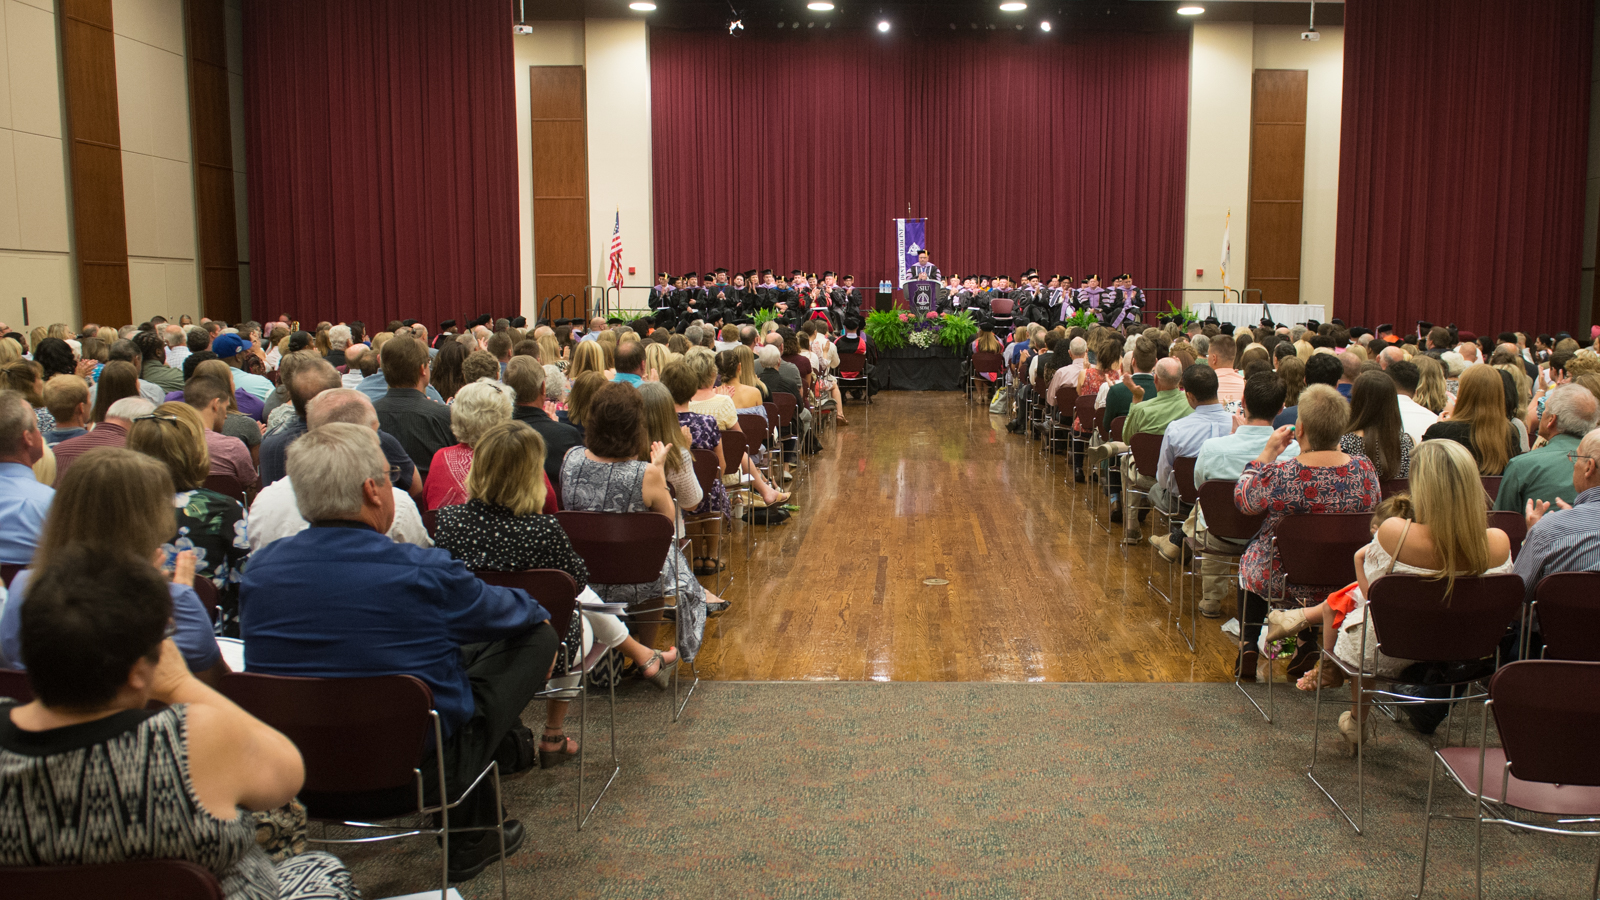 Full ballroom at previous commencement